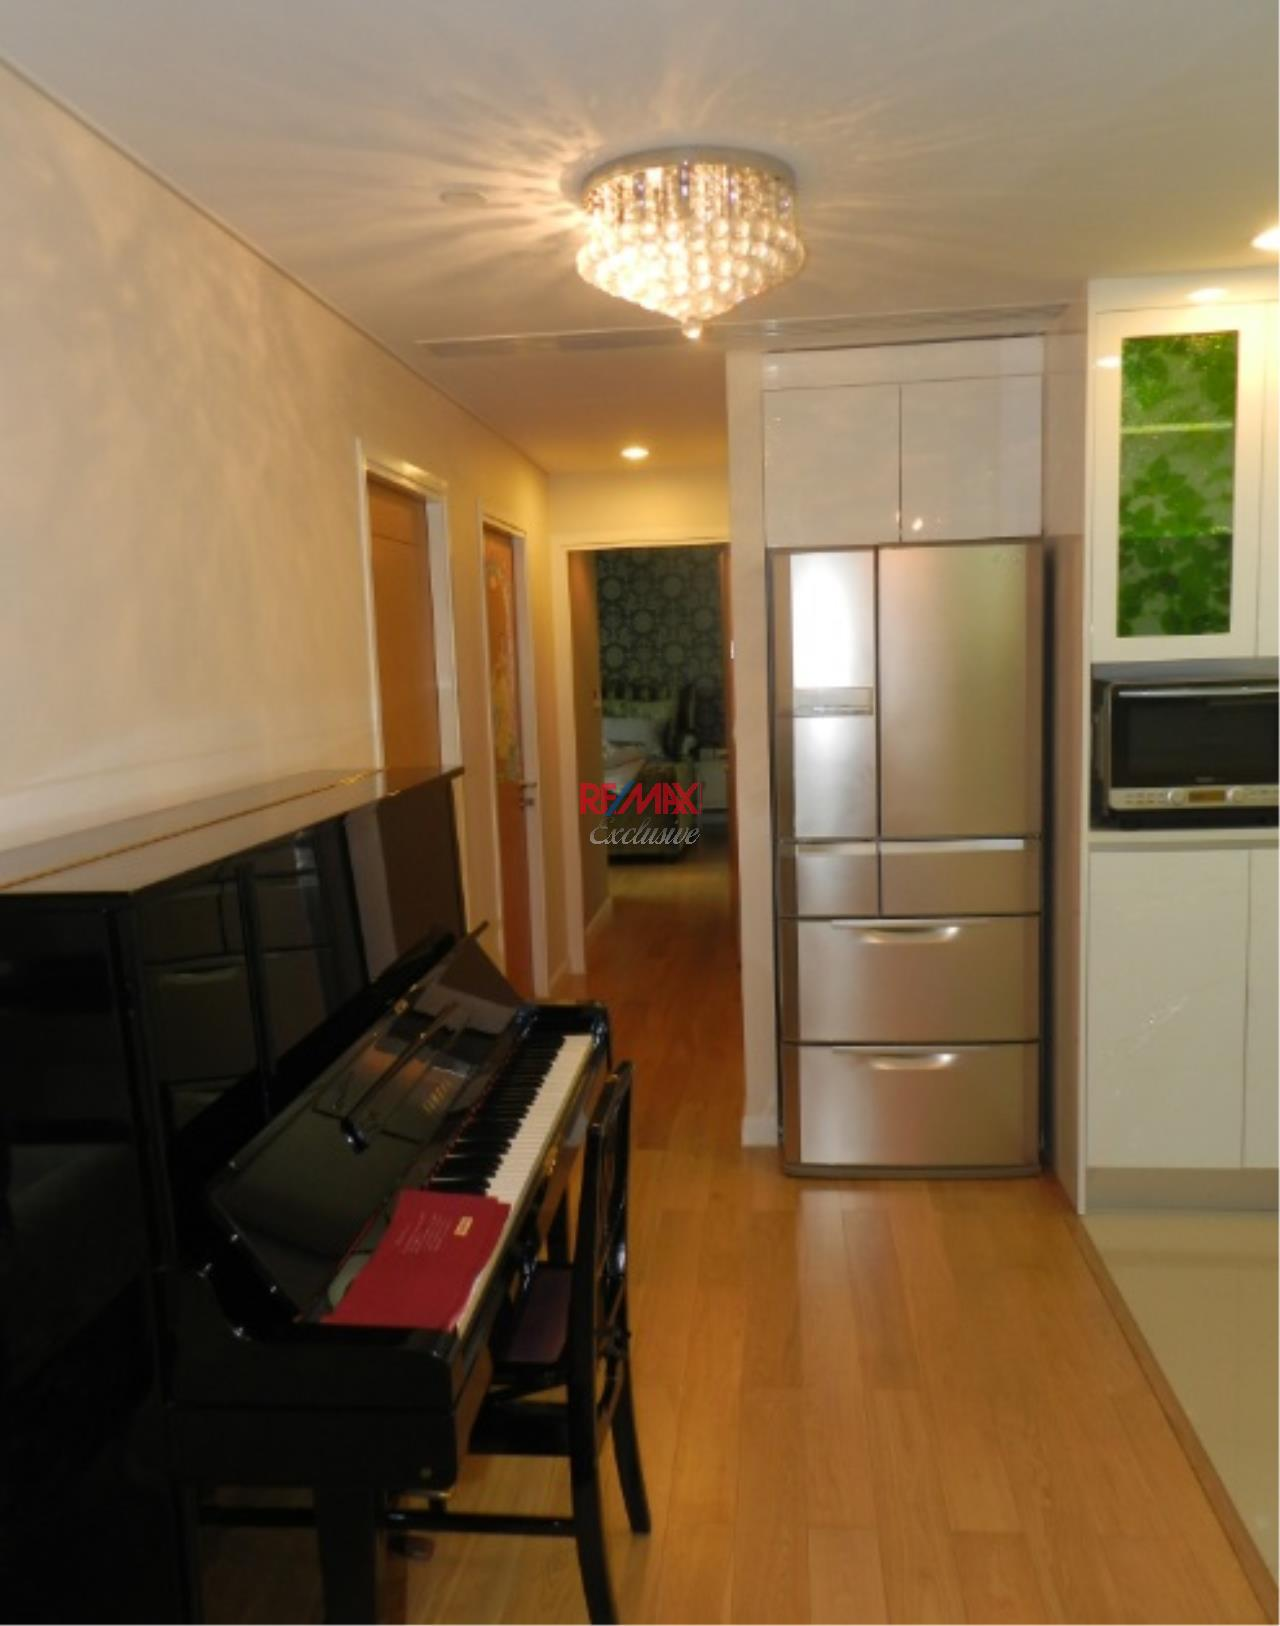 RE/MAX Exclusive Agency's The Wind Sukhumvit 23 3 Bedrooms With Magnificent View of Downtown Bangkok, For Rent and Sale!! 2